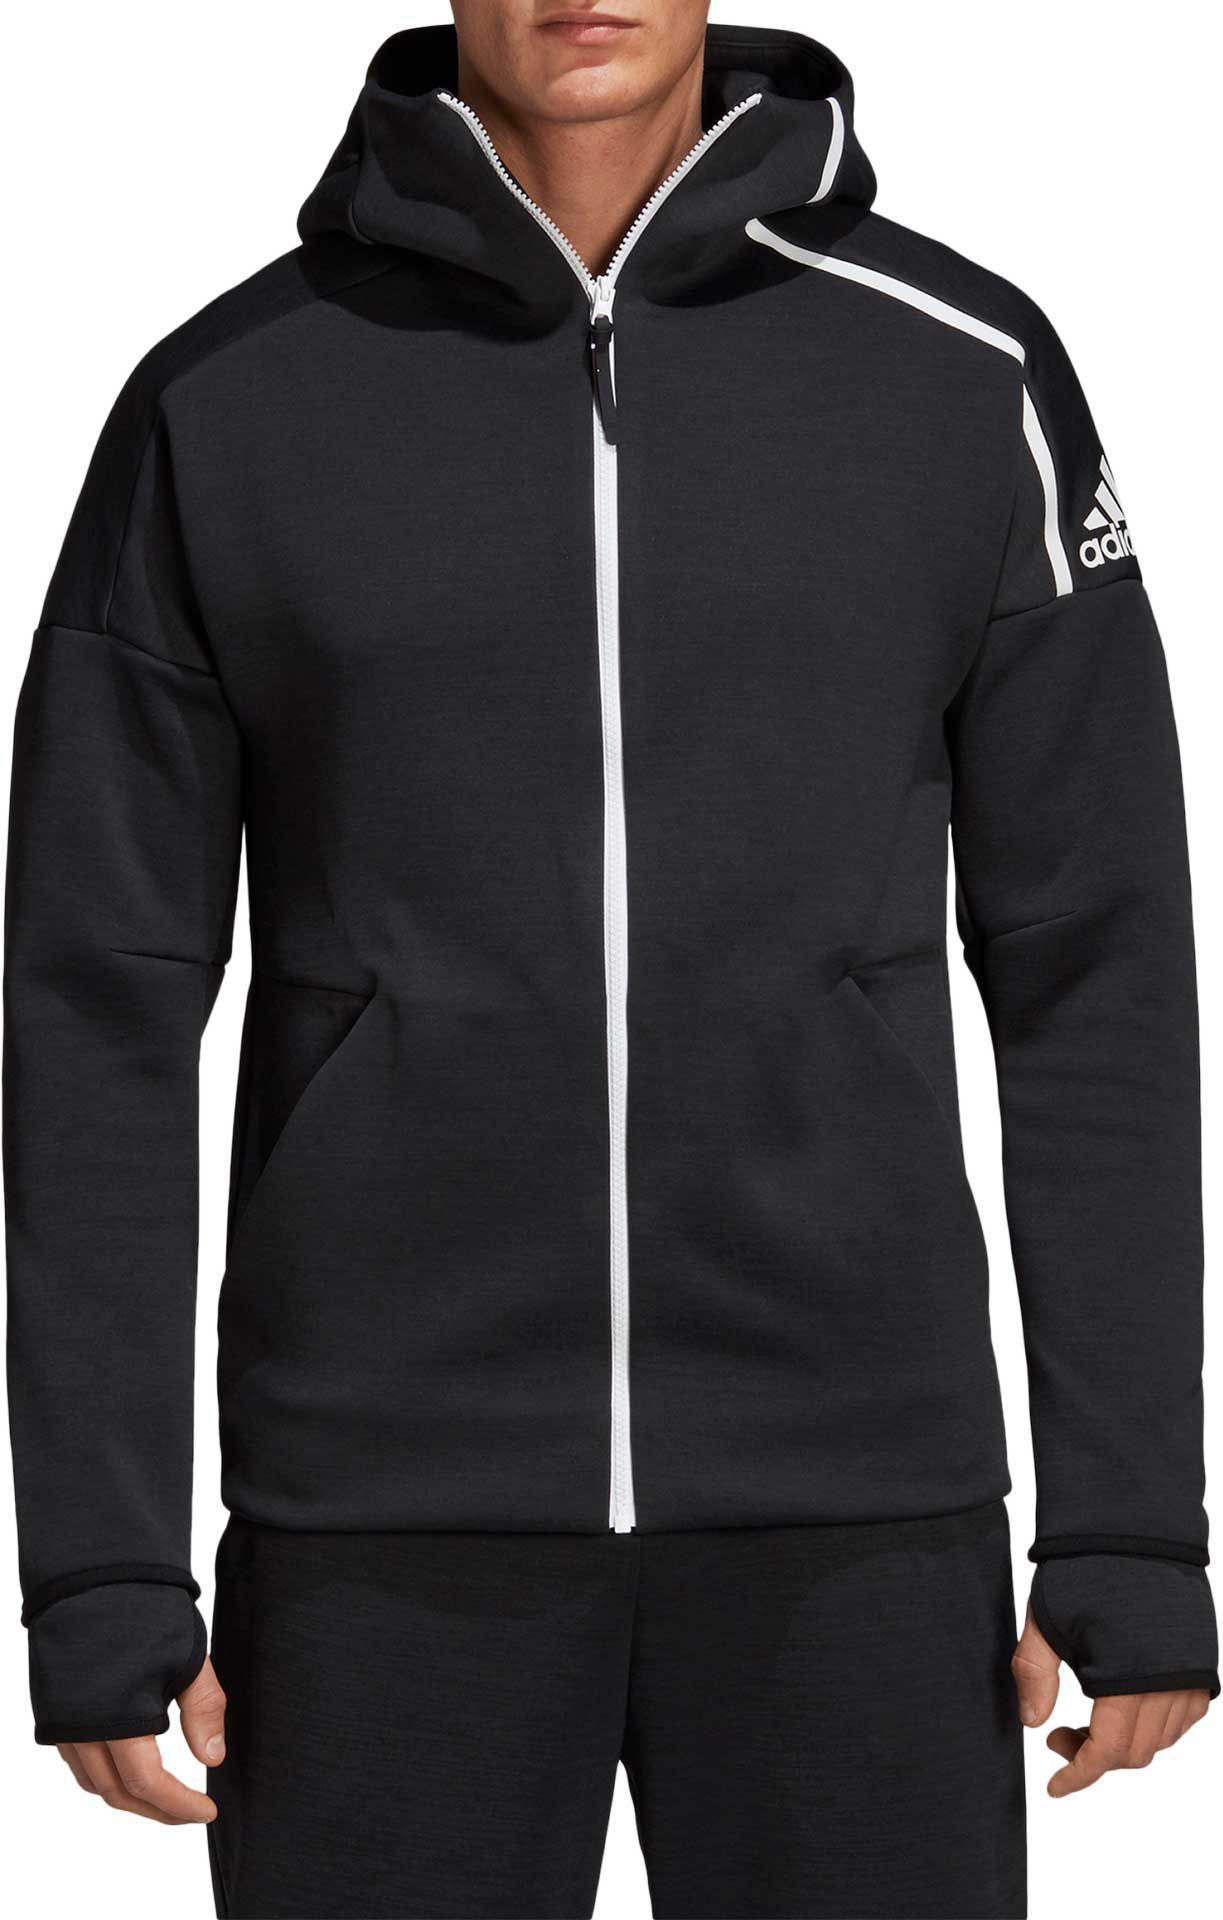 adidas Originals CURATED Zip up hoodie black Men's Plain